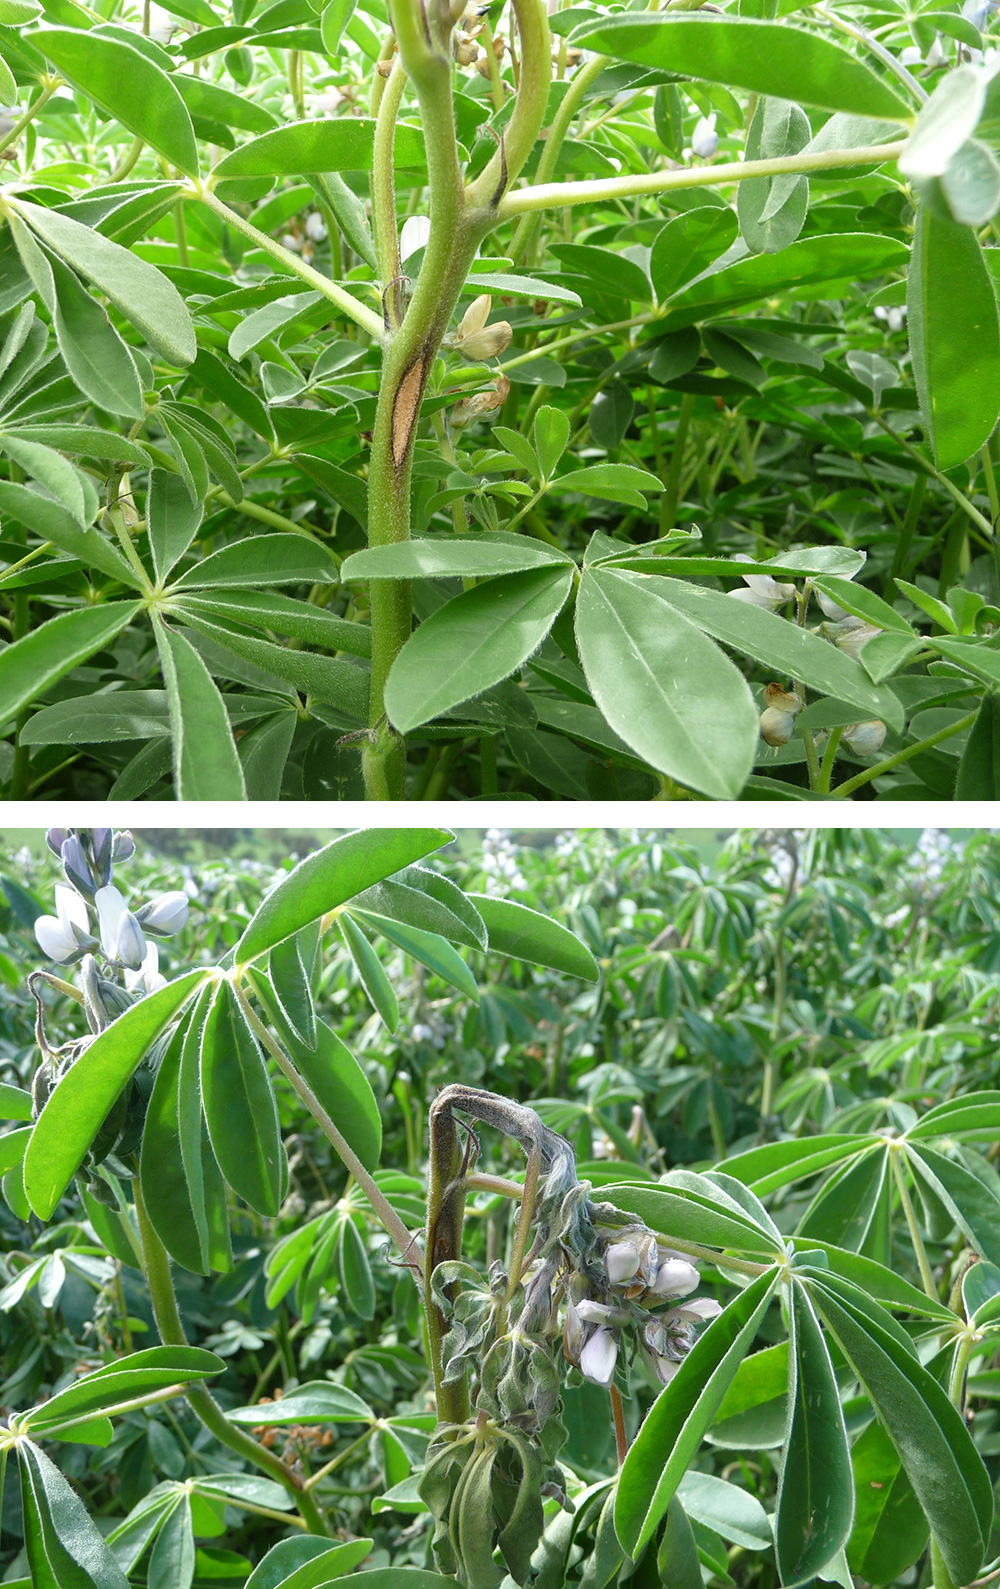 Two photos showing the affect on the plant from the disease